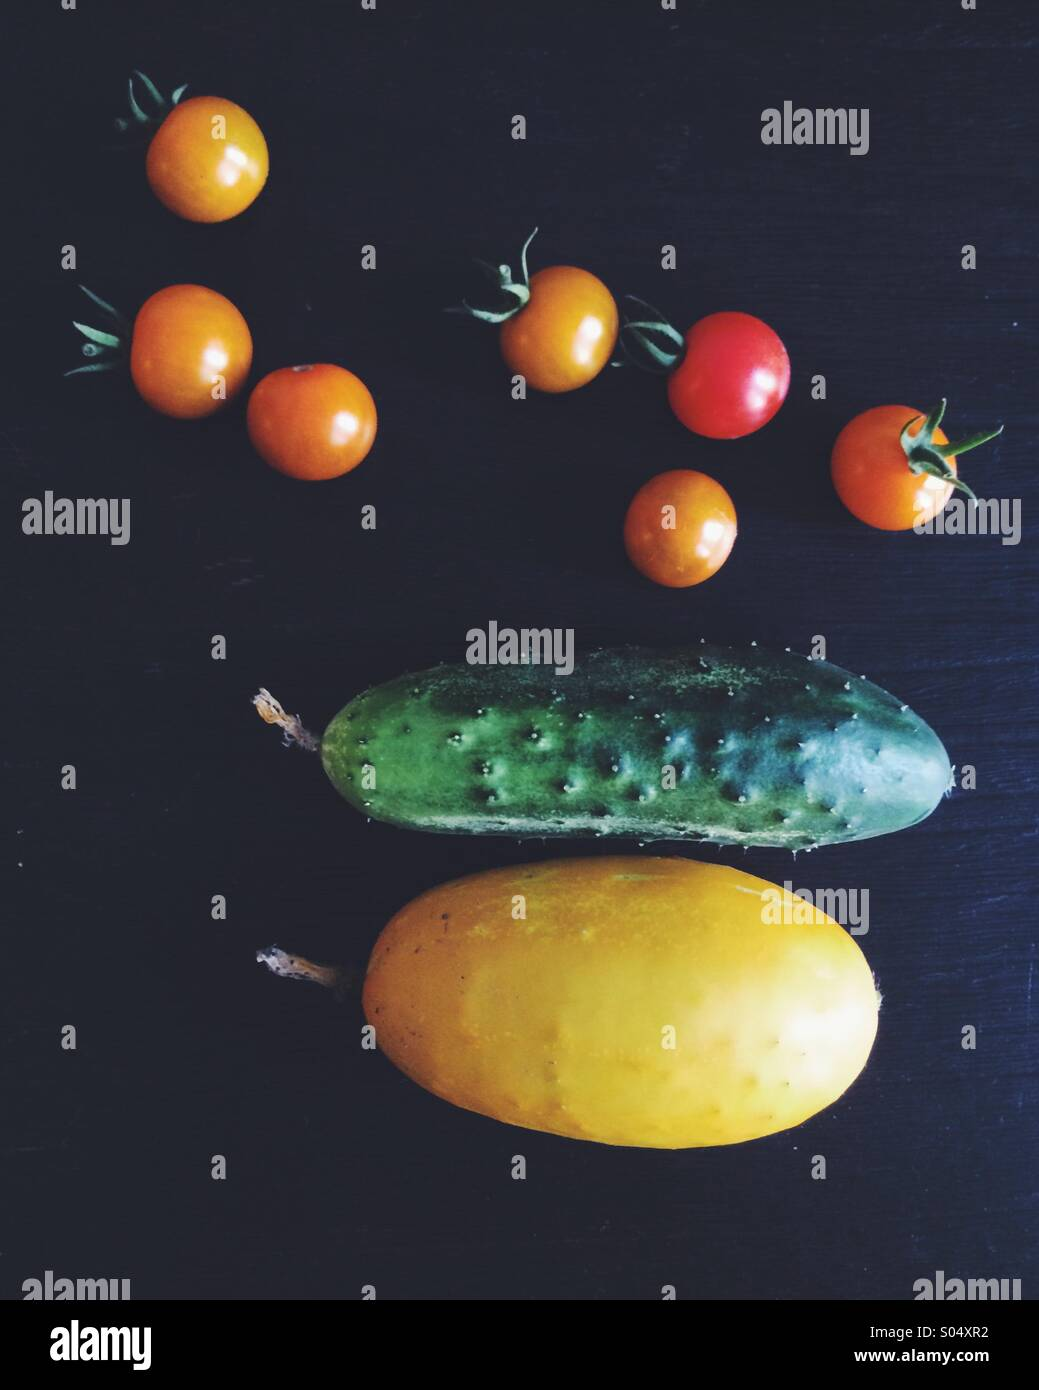 Tomatoes and cucumbers harvested from a garden. - Stock Image